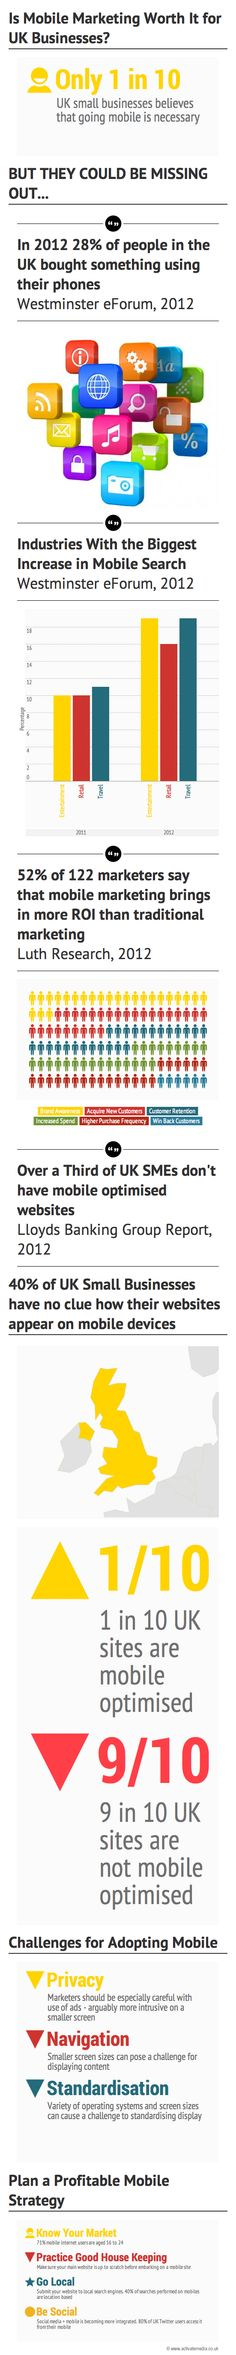 [INFOGRAPHIC] Is Mobile Marketing Worth it for Your Business - UK stats on mobile marketing